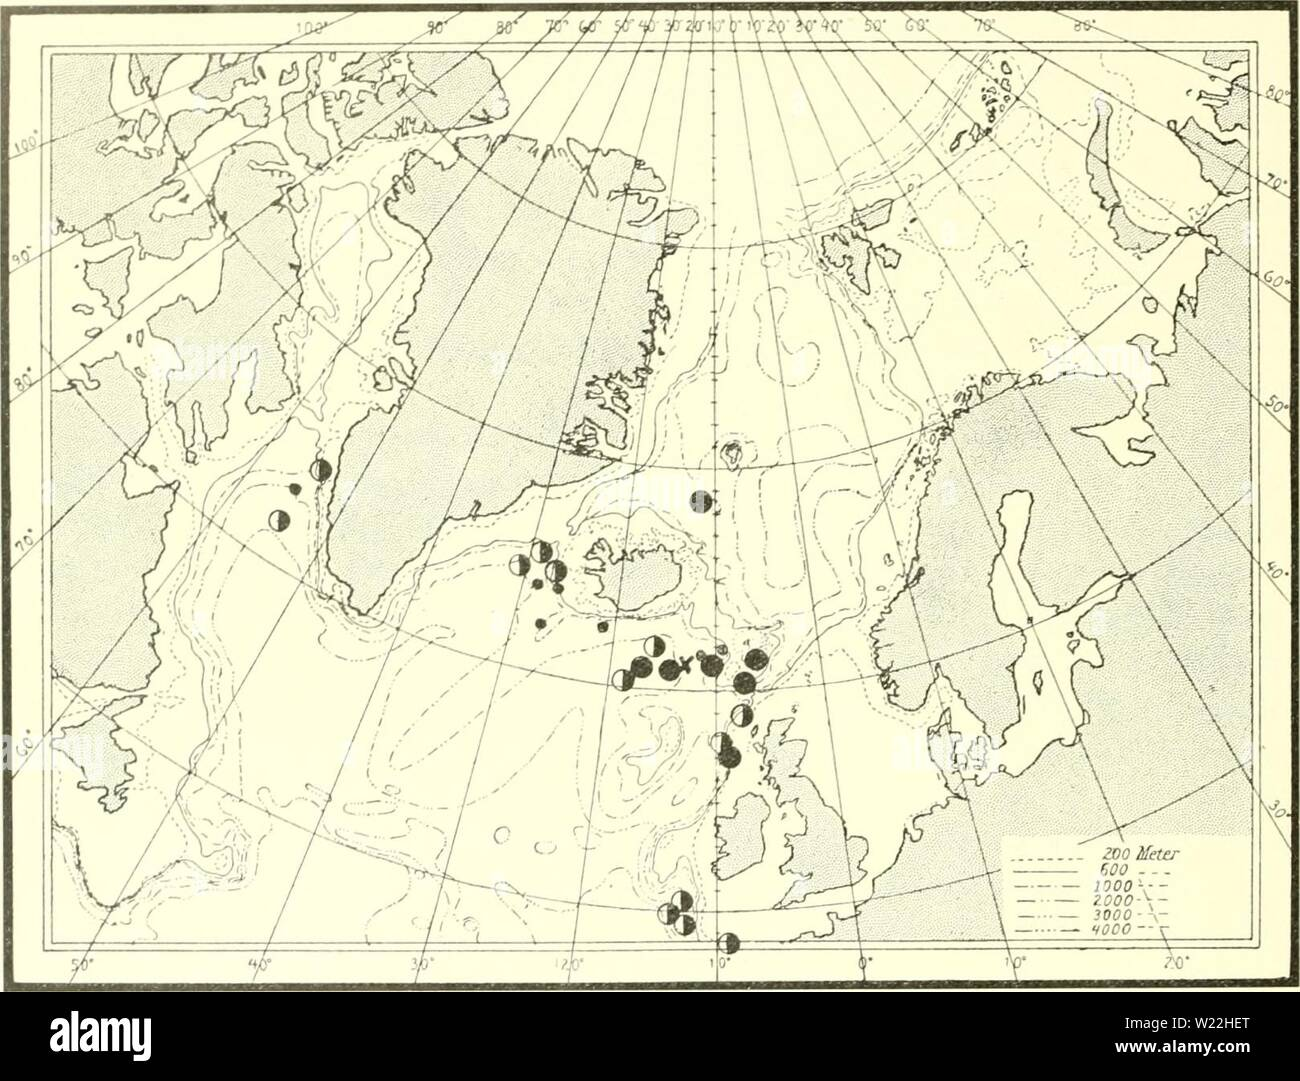 Archive image from page 17 of The Danish Ingolf-expedition (1899-1953). The Danish Ingolf-expedition  danishingolfex4cpt11daniuoft Year: 1899-1953  TOMOFTERIDjE AND typhloscolecid. always found near the surface of the ocean, entered these two areas, viz: the Irminger Sea and the Davis Strait? They have probably followed the branch of the North Atlantic Drift which W. of Ireland turns north- wards and, following the south and west coast of Iceland, enters the northern part of the Denmark Strait. Part of this current transforms into the cold East Greenland current, which turns round Cape Farewel - Stock Image